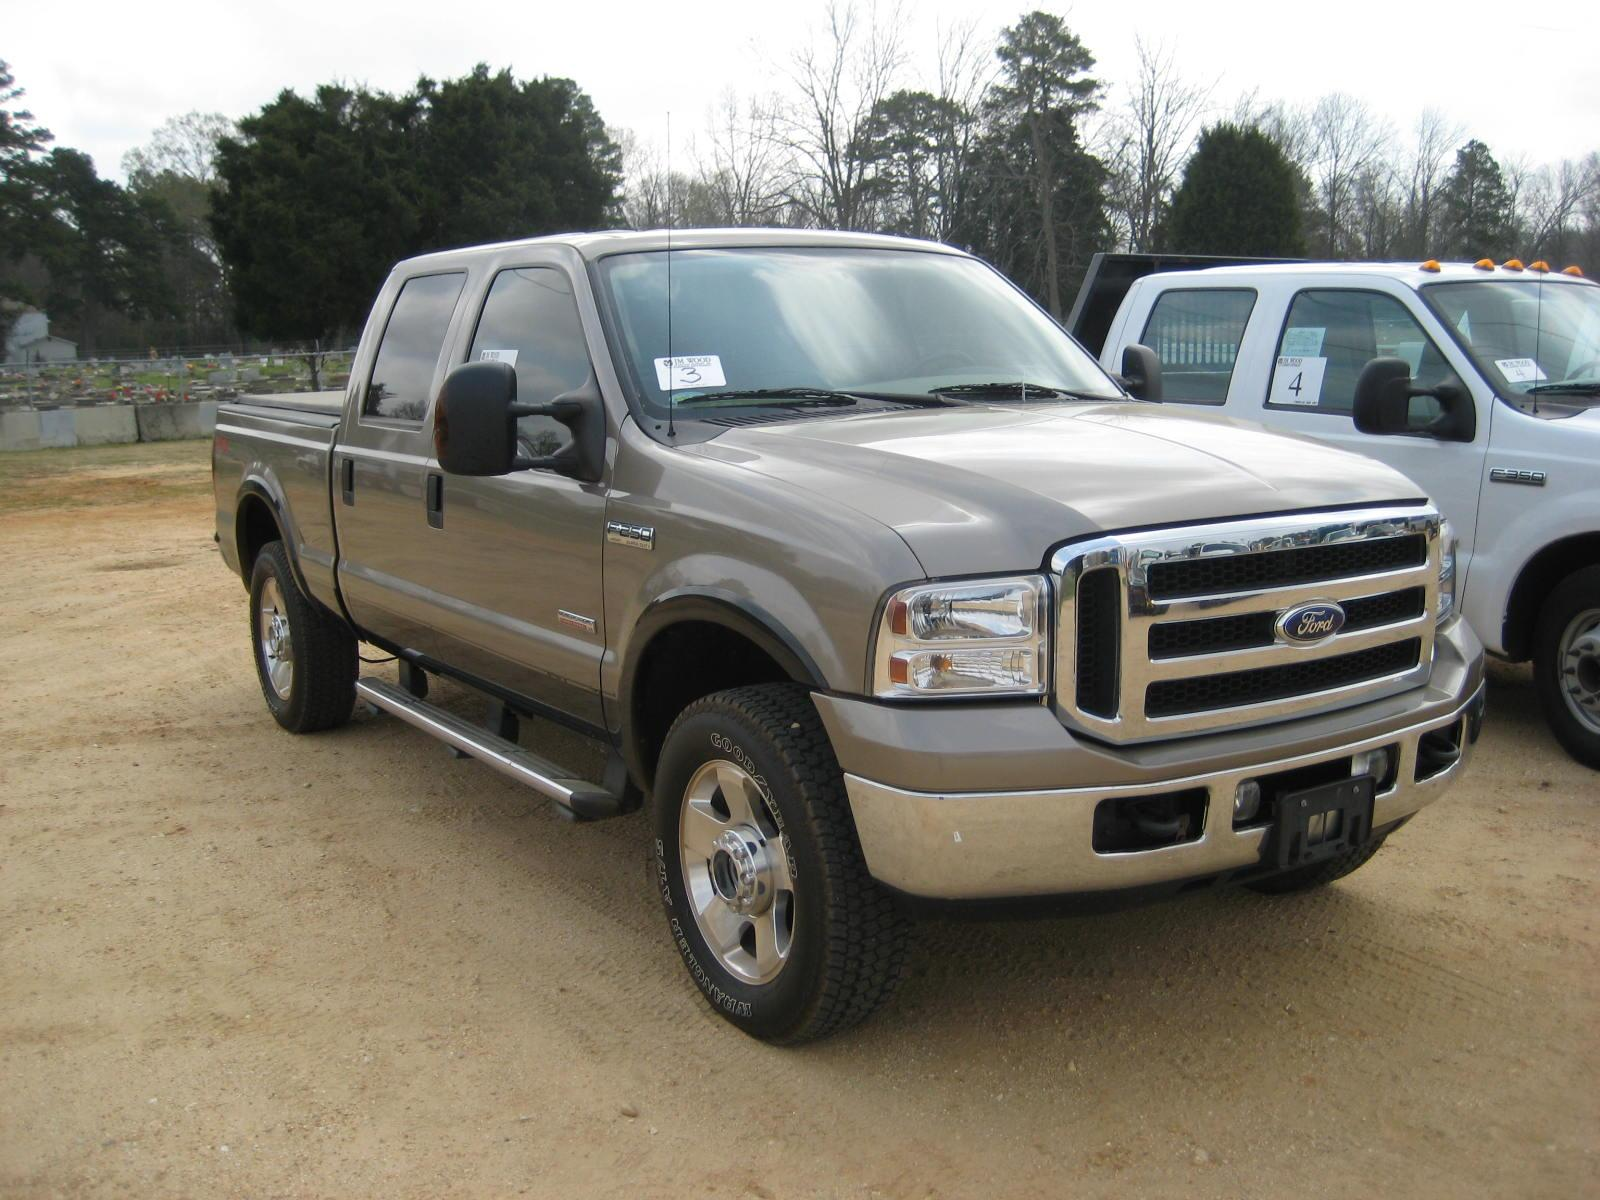 hight resolution of image 1 2006 ford f250 lariat crew cab 4x4